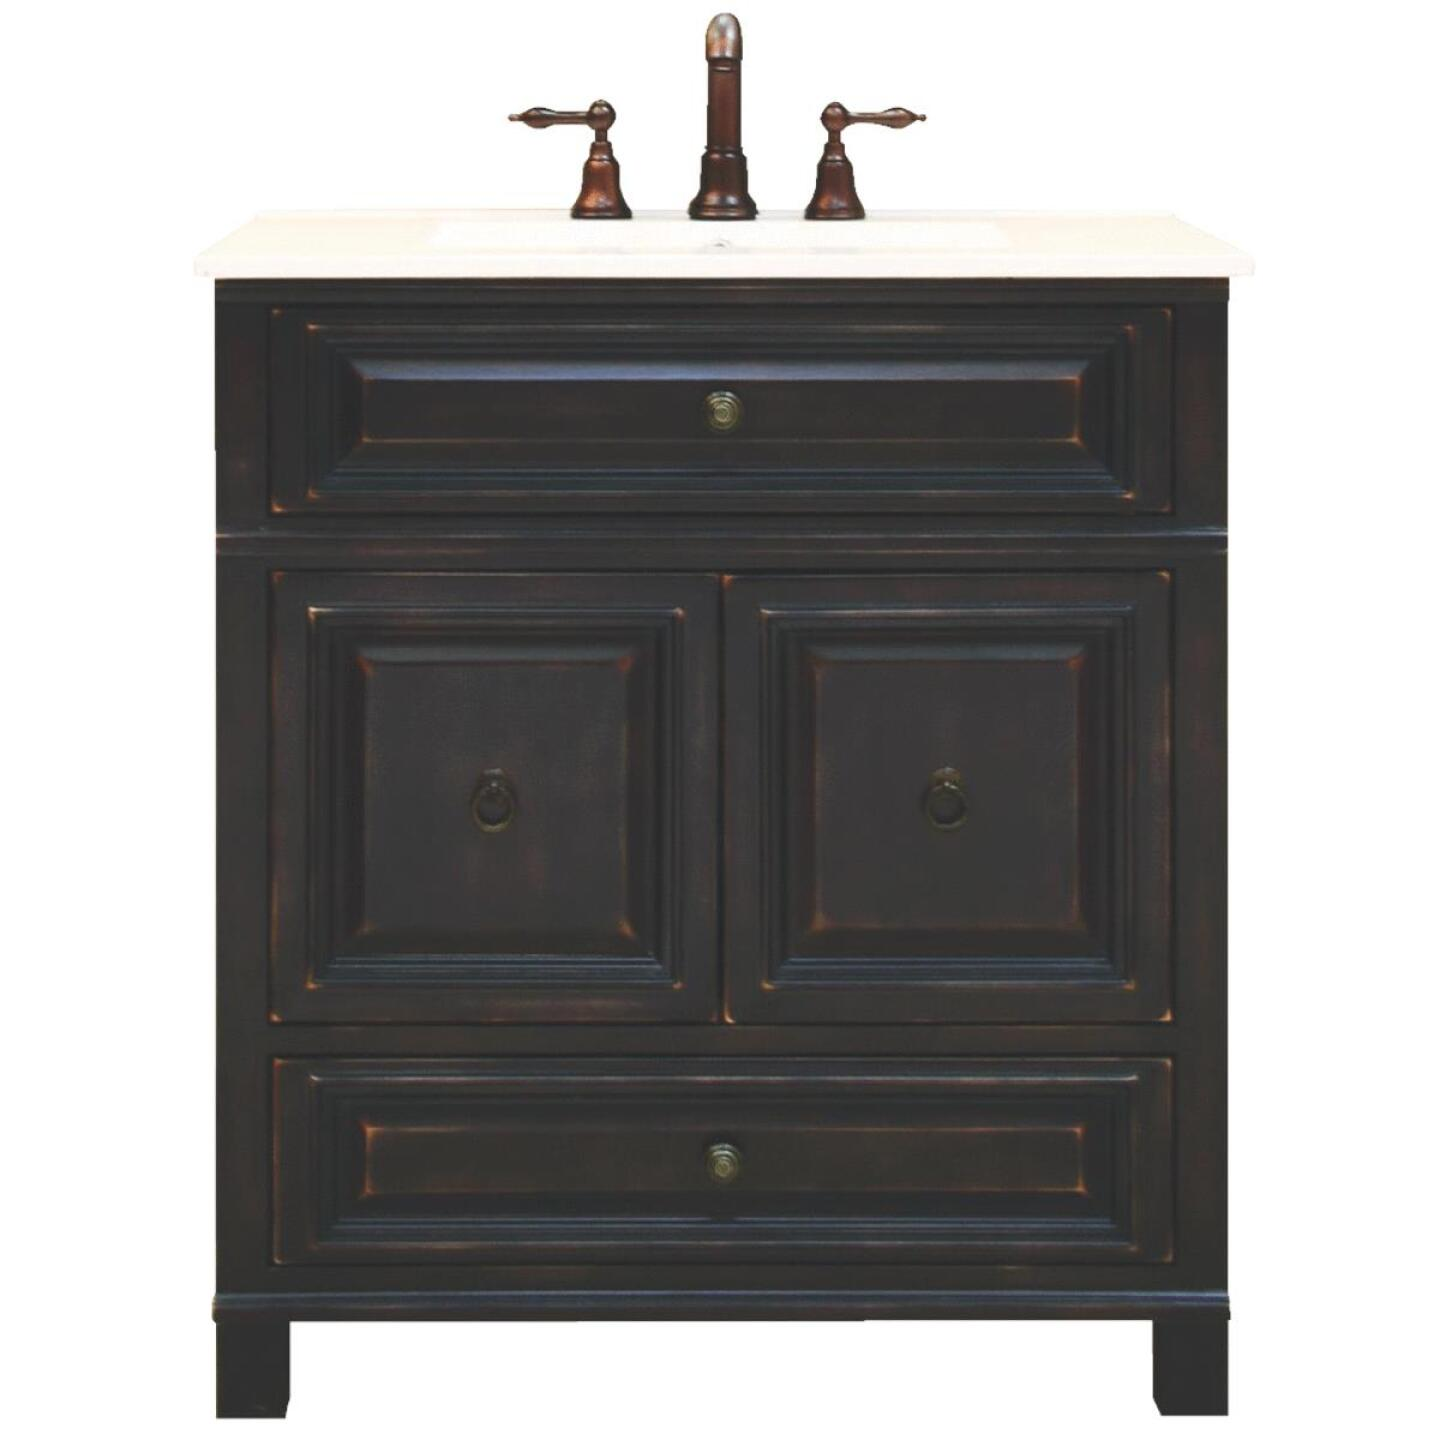 Sunny Wood Barton Hill Black Onyx 30 In. W x 34 In. H x 21 In. D Vanity Base, 2 Door/1 Drawer Image 86